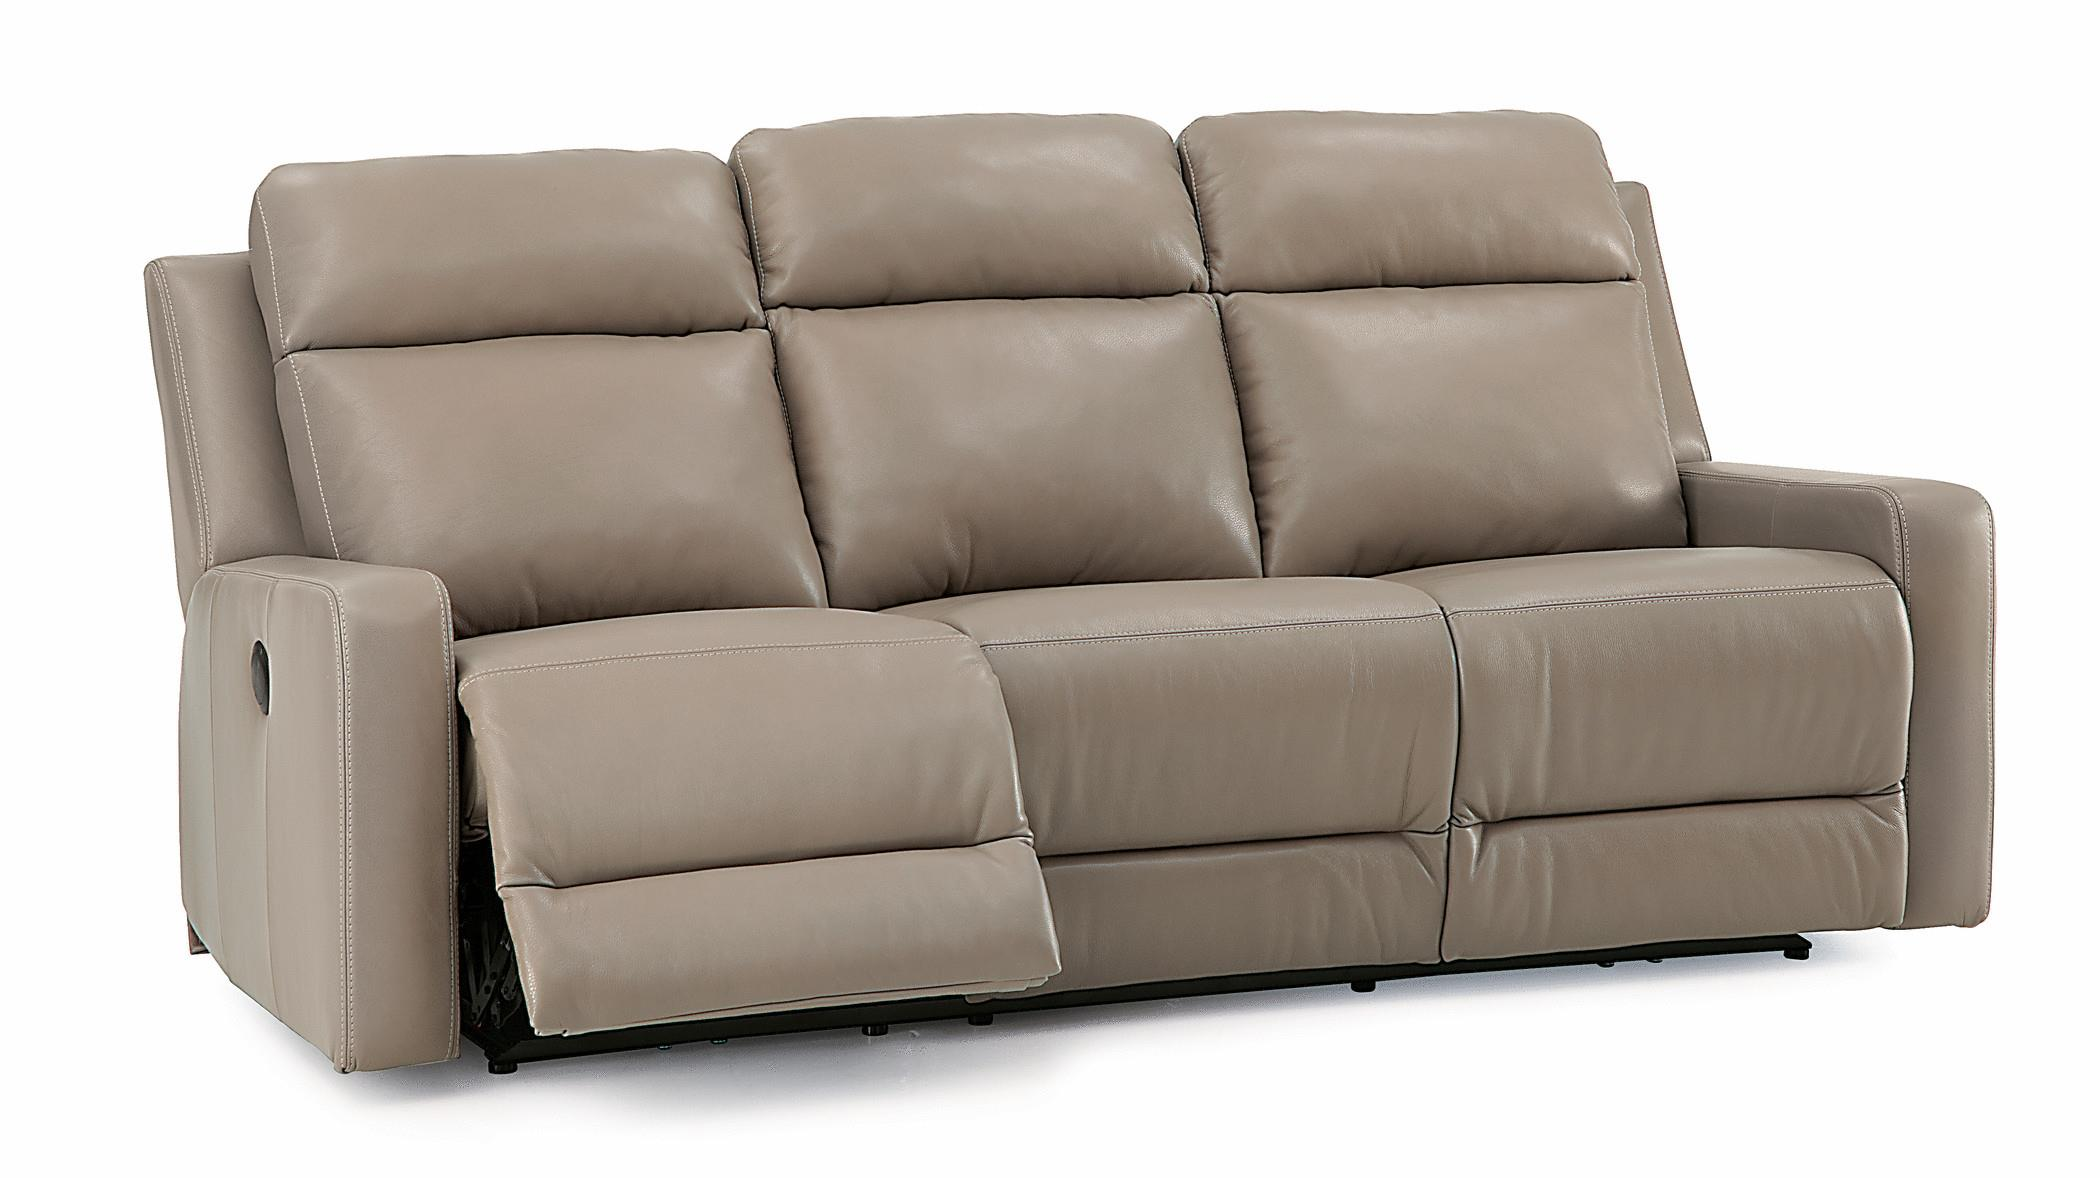 alora manual sofa range recliner ahf front furniture seater